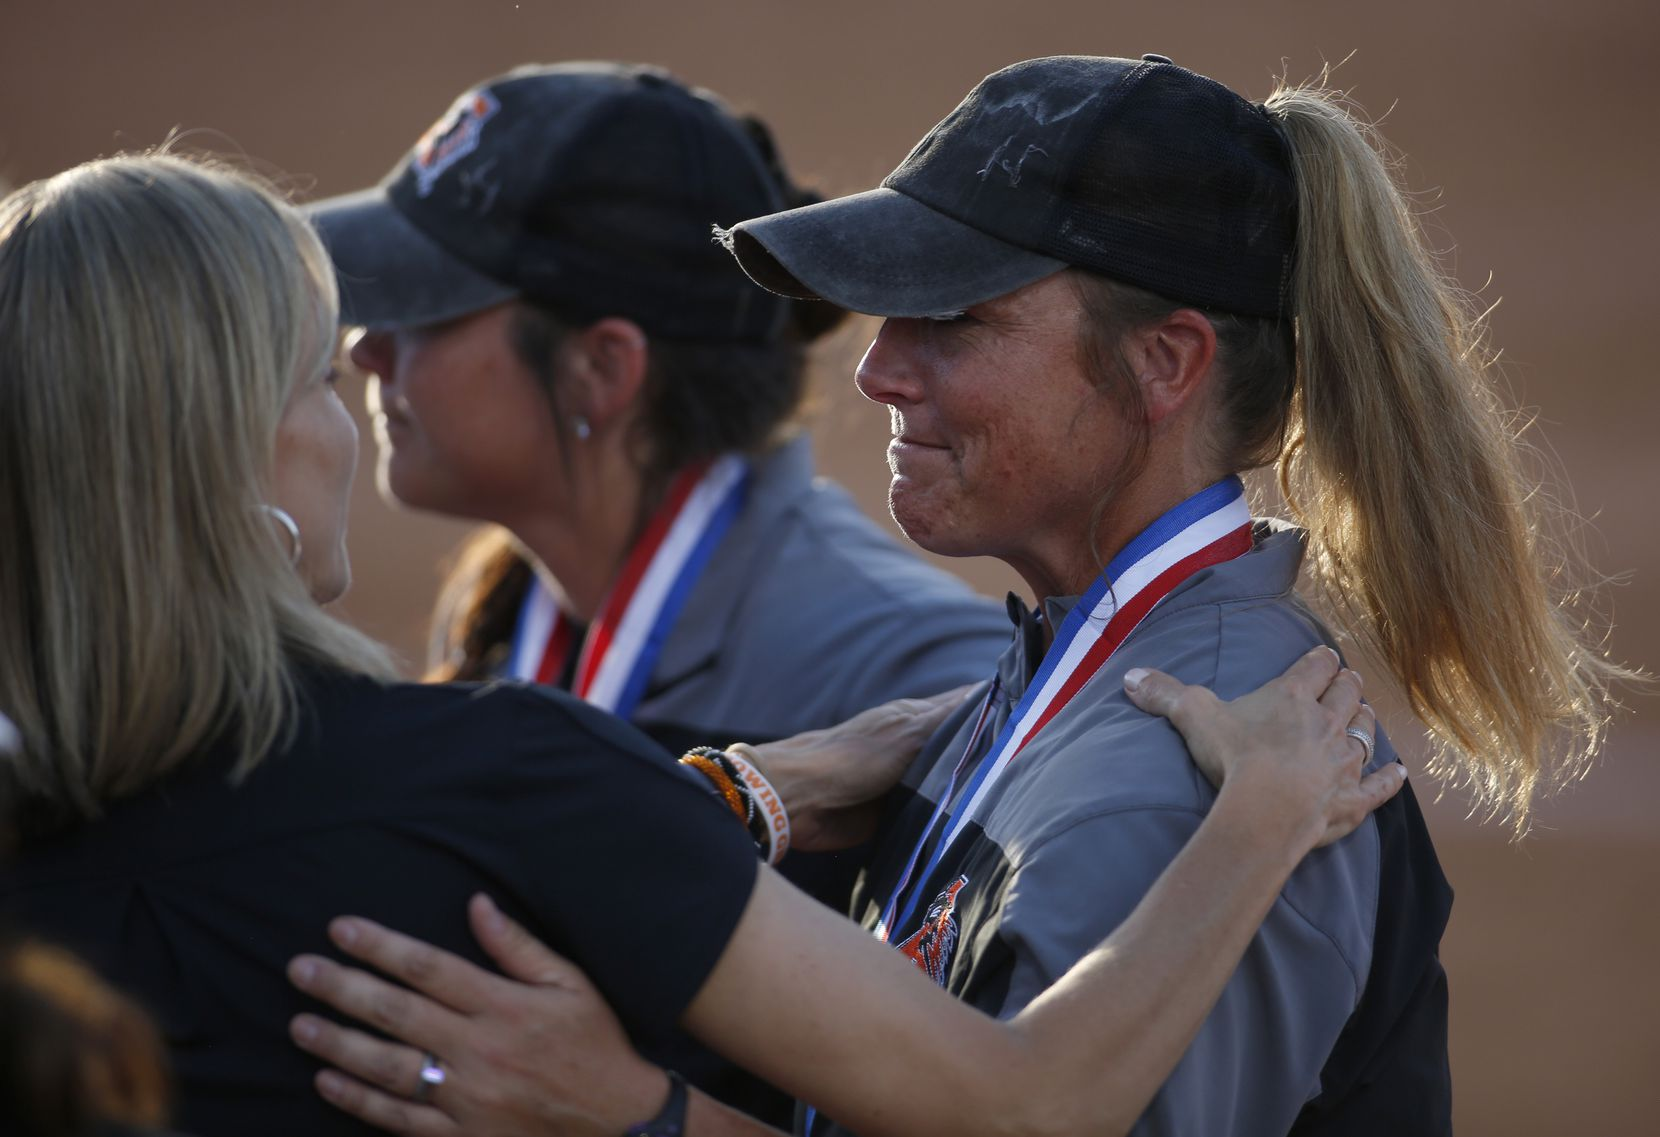 Aledo head coach Heather Myers, right, receives well wishes on the field following their 4-1 loss to Barbers Hill. The two teams played their UIL 5A state softball championship game at Red and Charline McCombs Field on the University of Texas campus in Austin on June 5, 2021. (Steve Hamm/ Special Contributor)